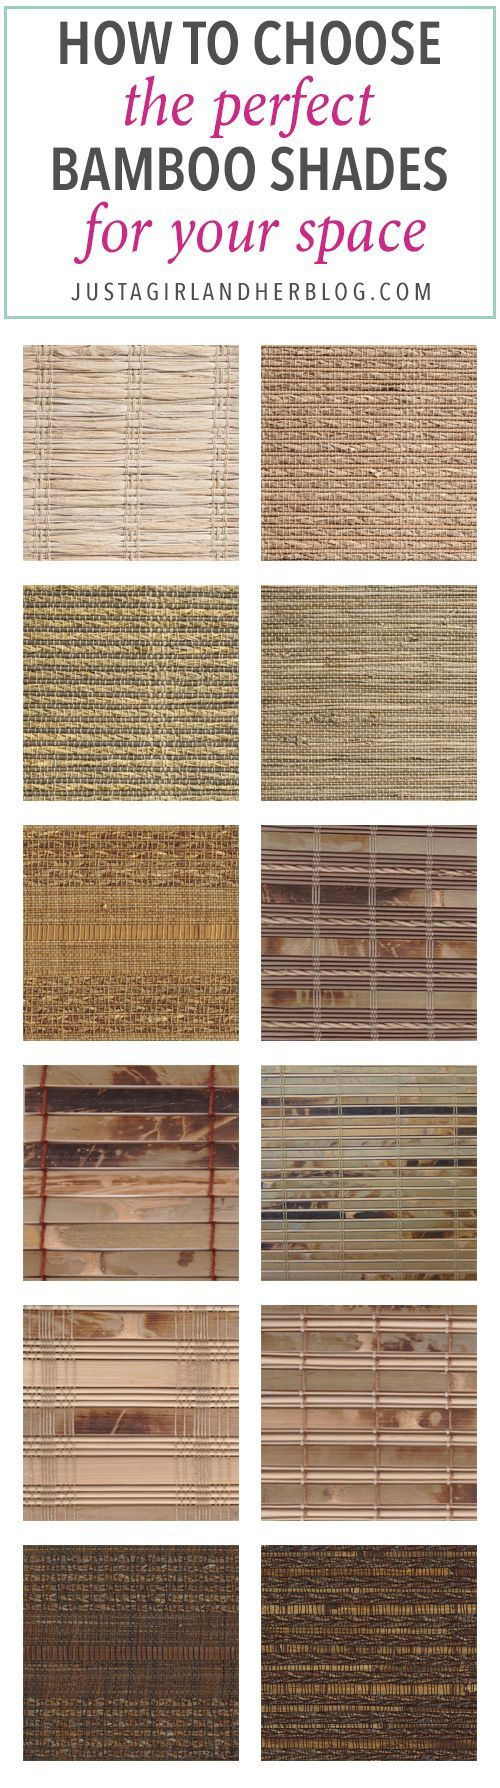 Home- How to Choose Bamboo Shades, window treatments, shades, blinds, wood shades, woven wood shades, SelectBlinds